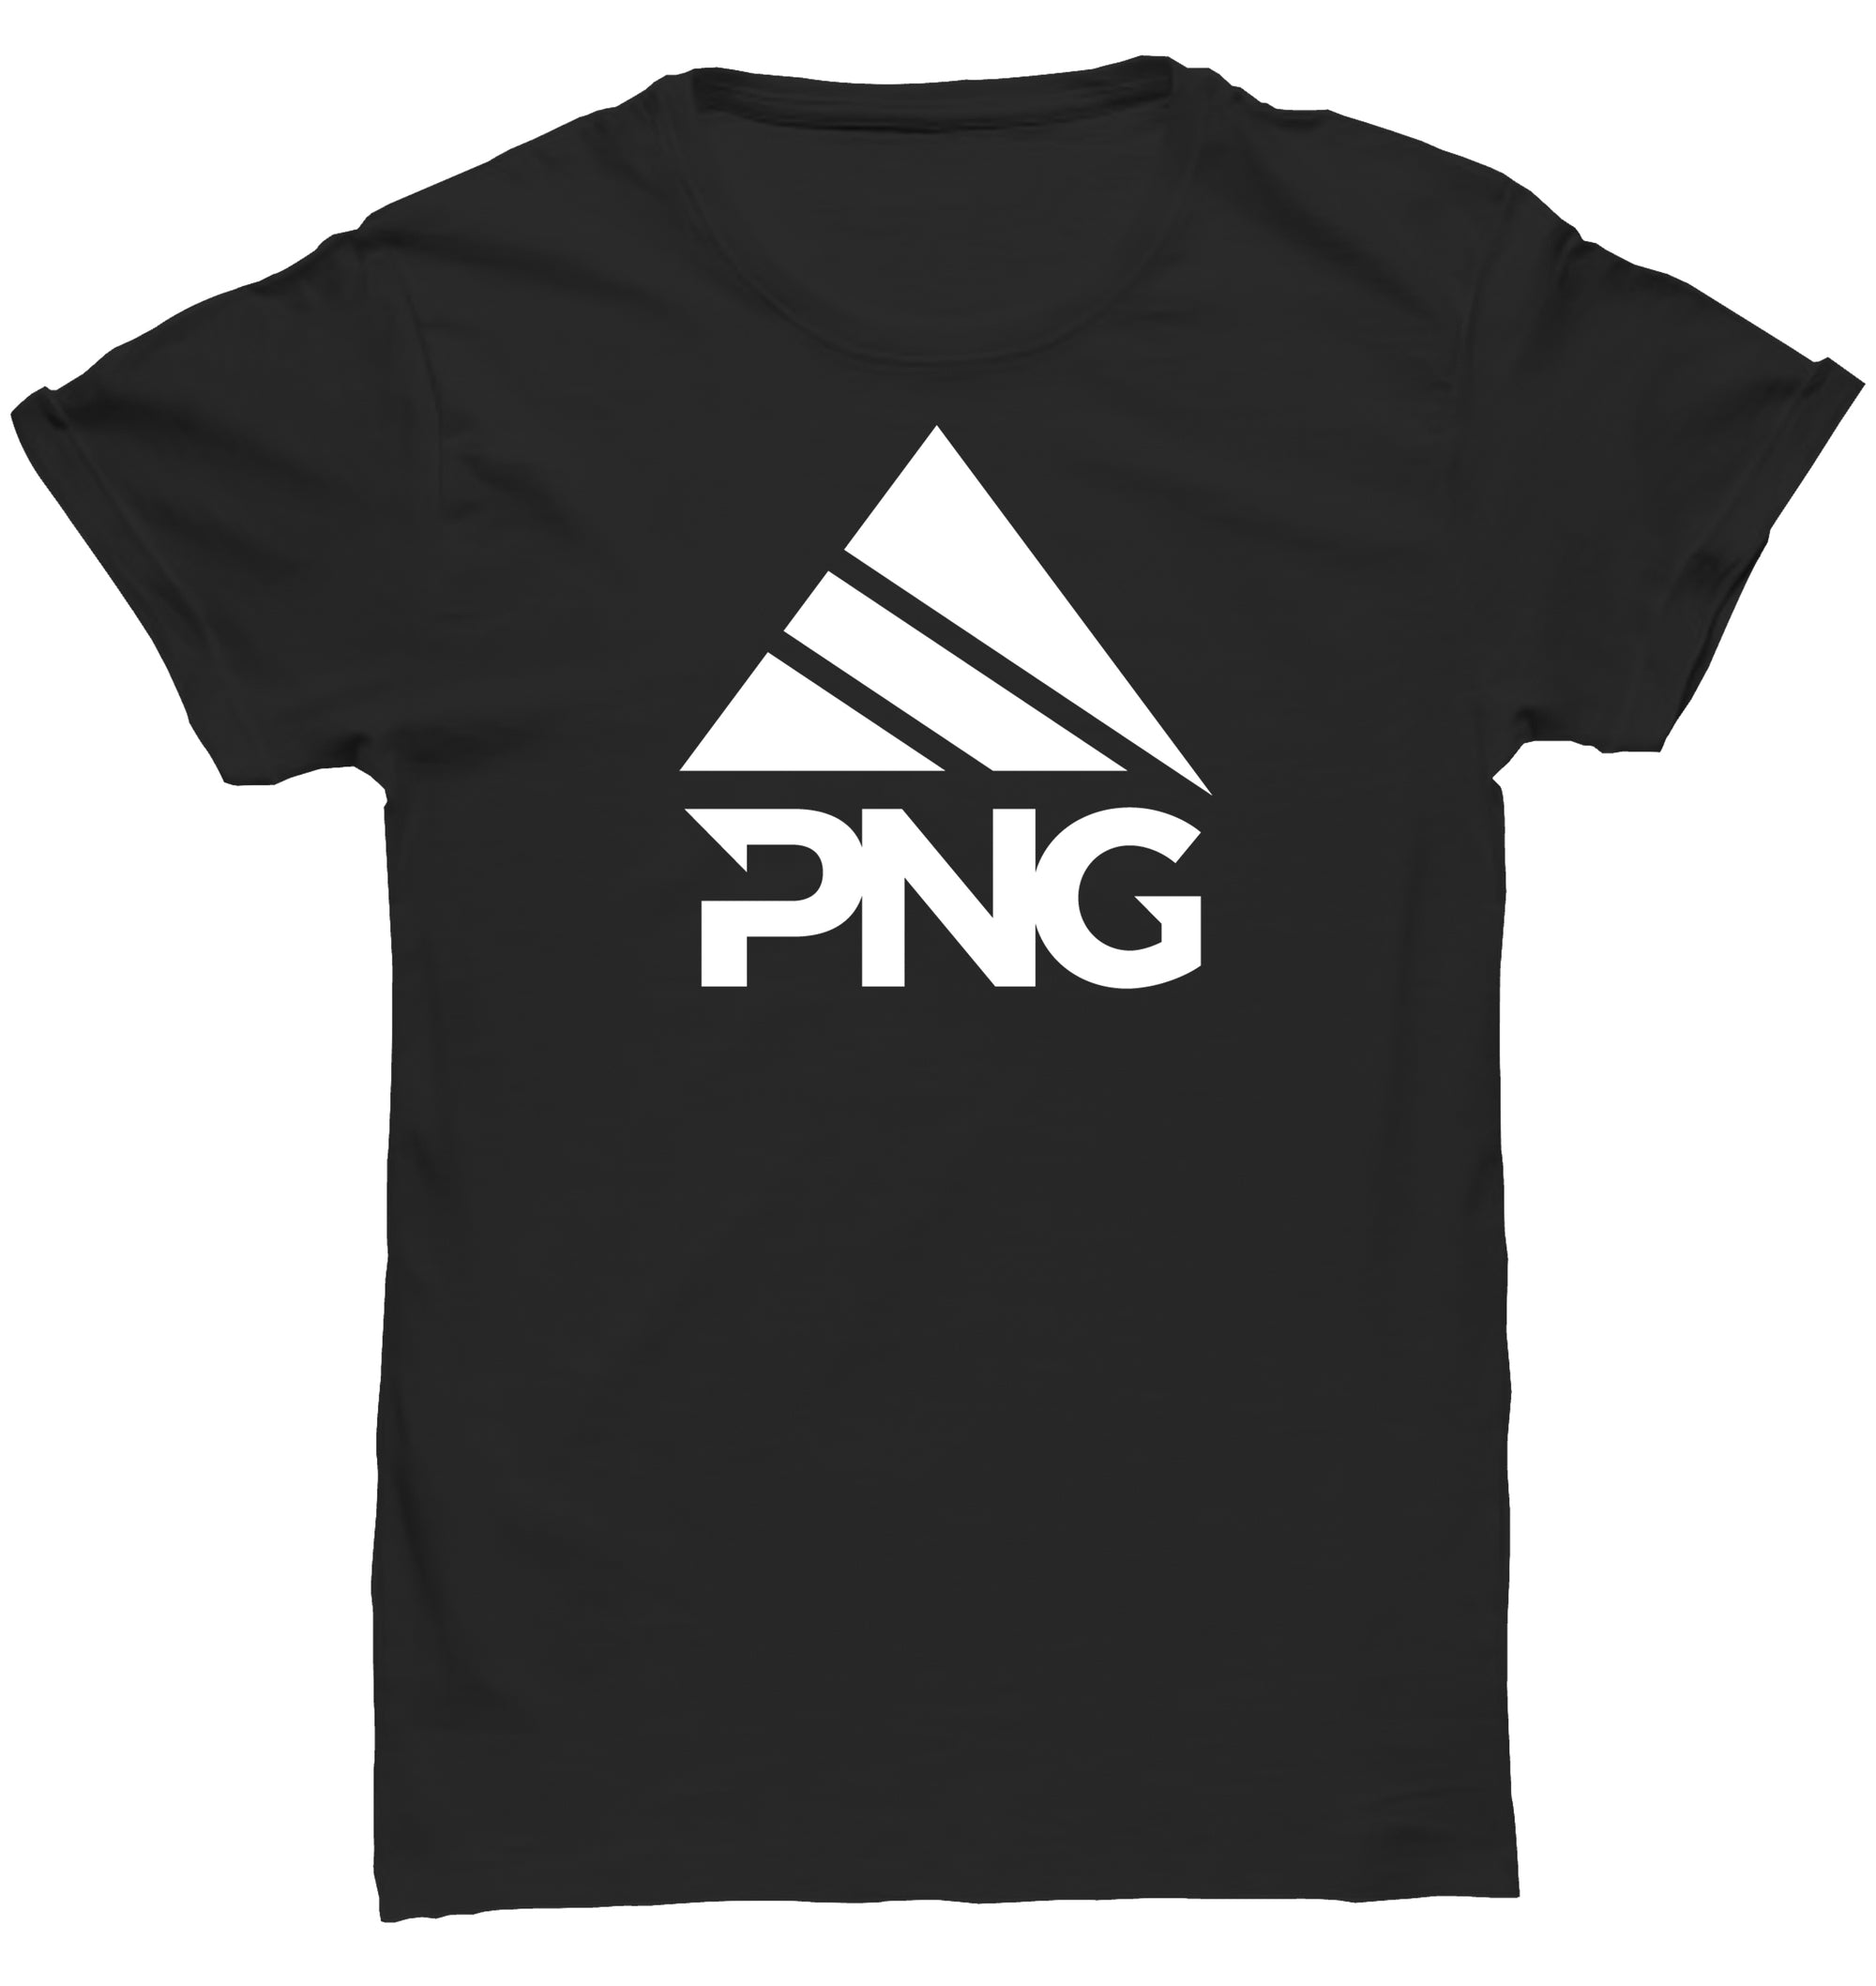 Womens Short Sleeve Stacked White Logo T-Shirt - Pinnacle Nutrition Group